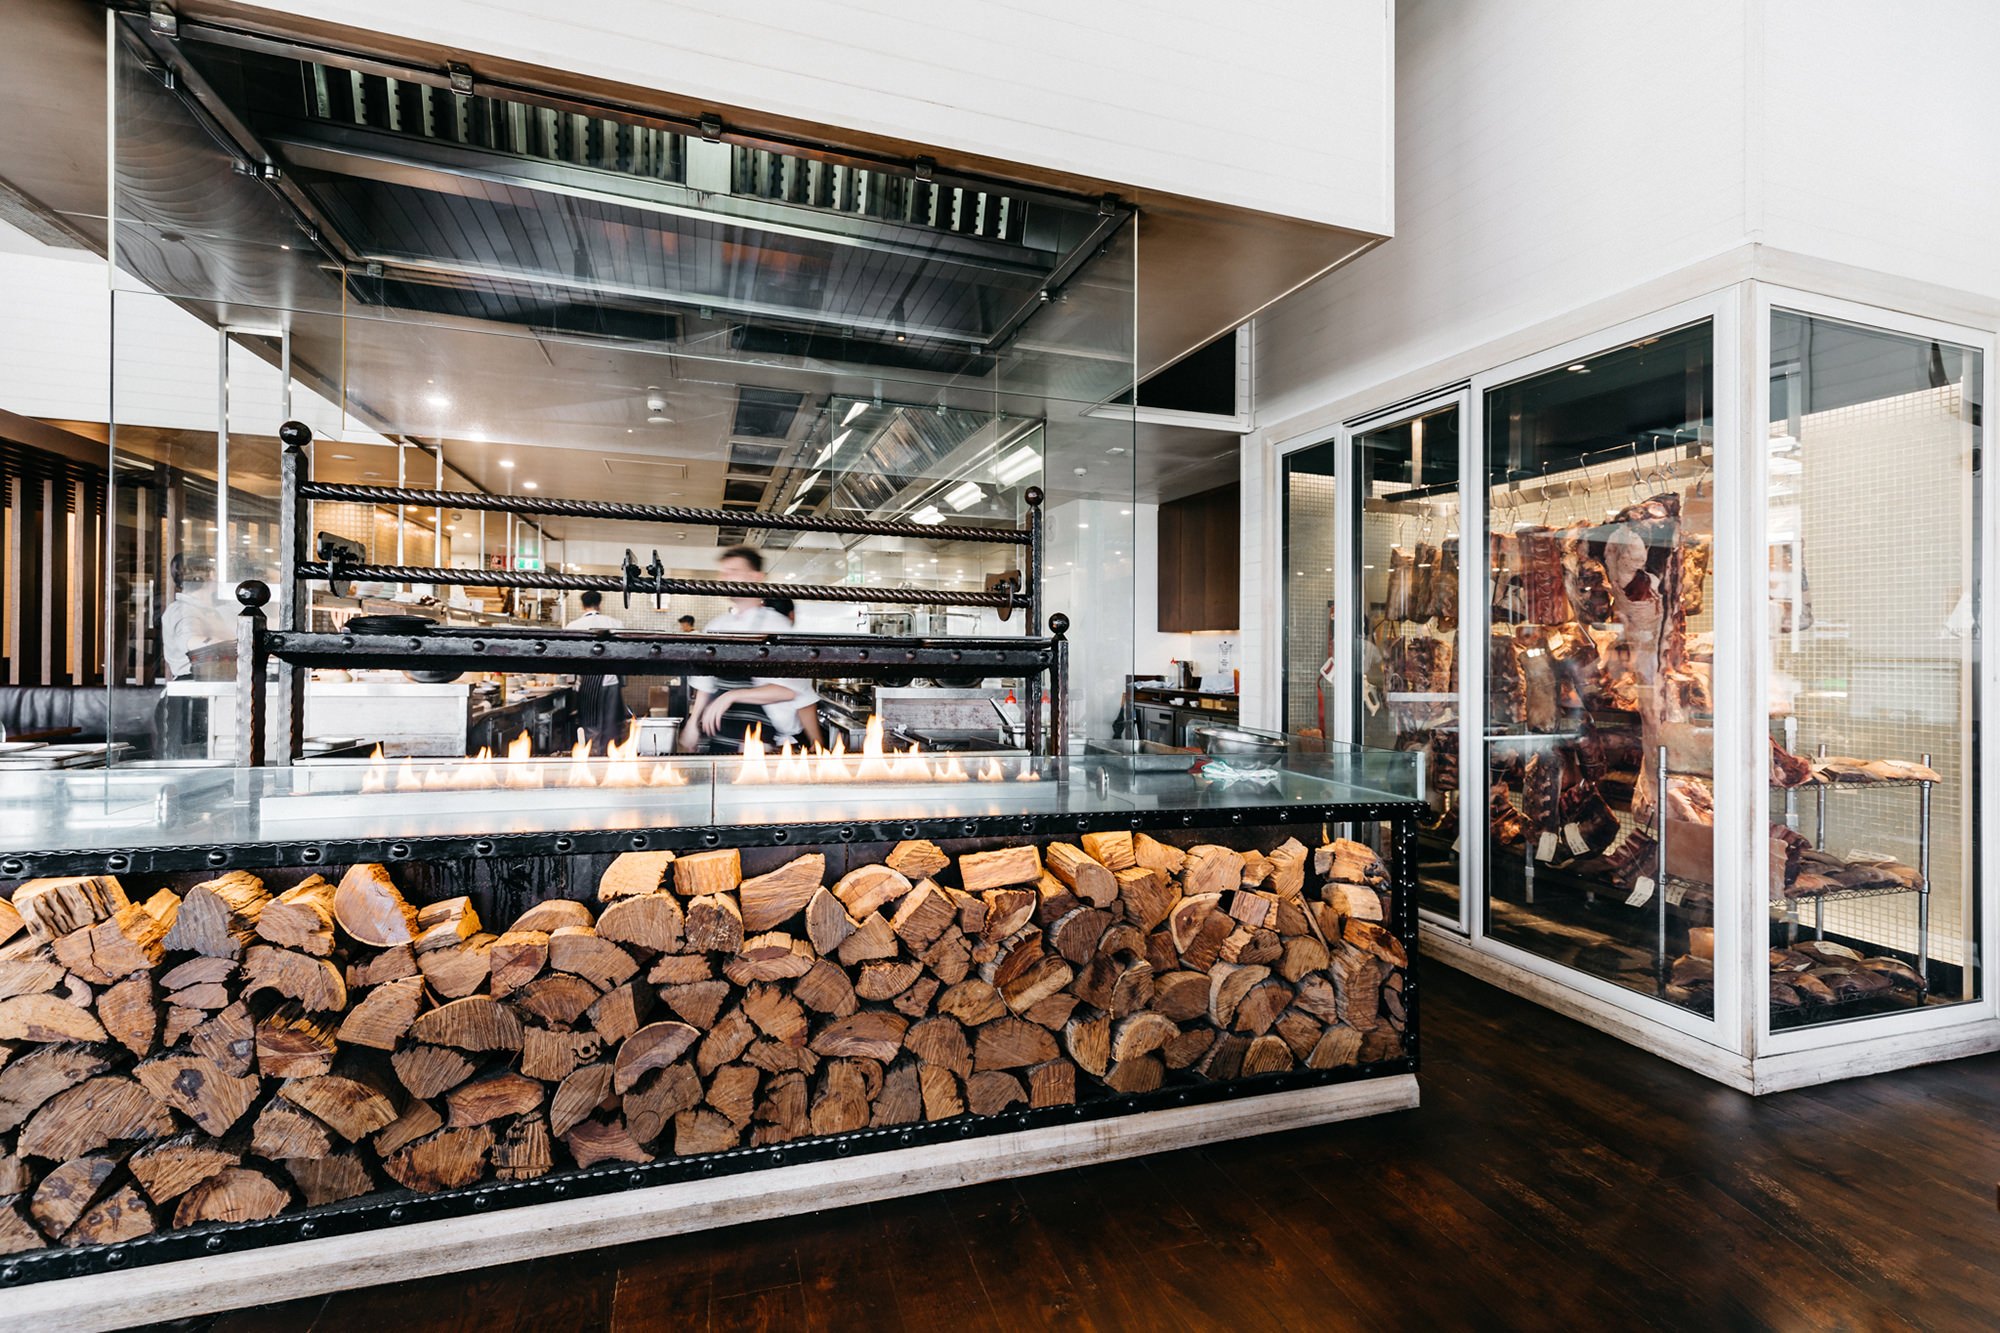 The Regatta Hotel's open kitchen, two metre flame-grill and dry age cabinet.